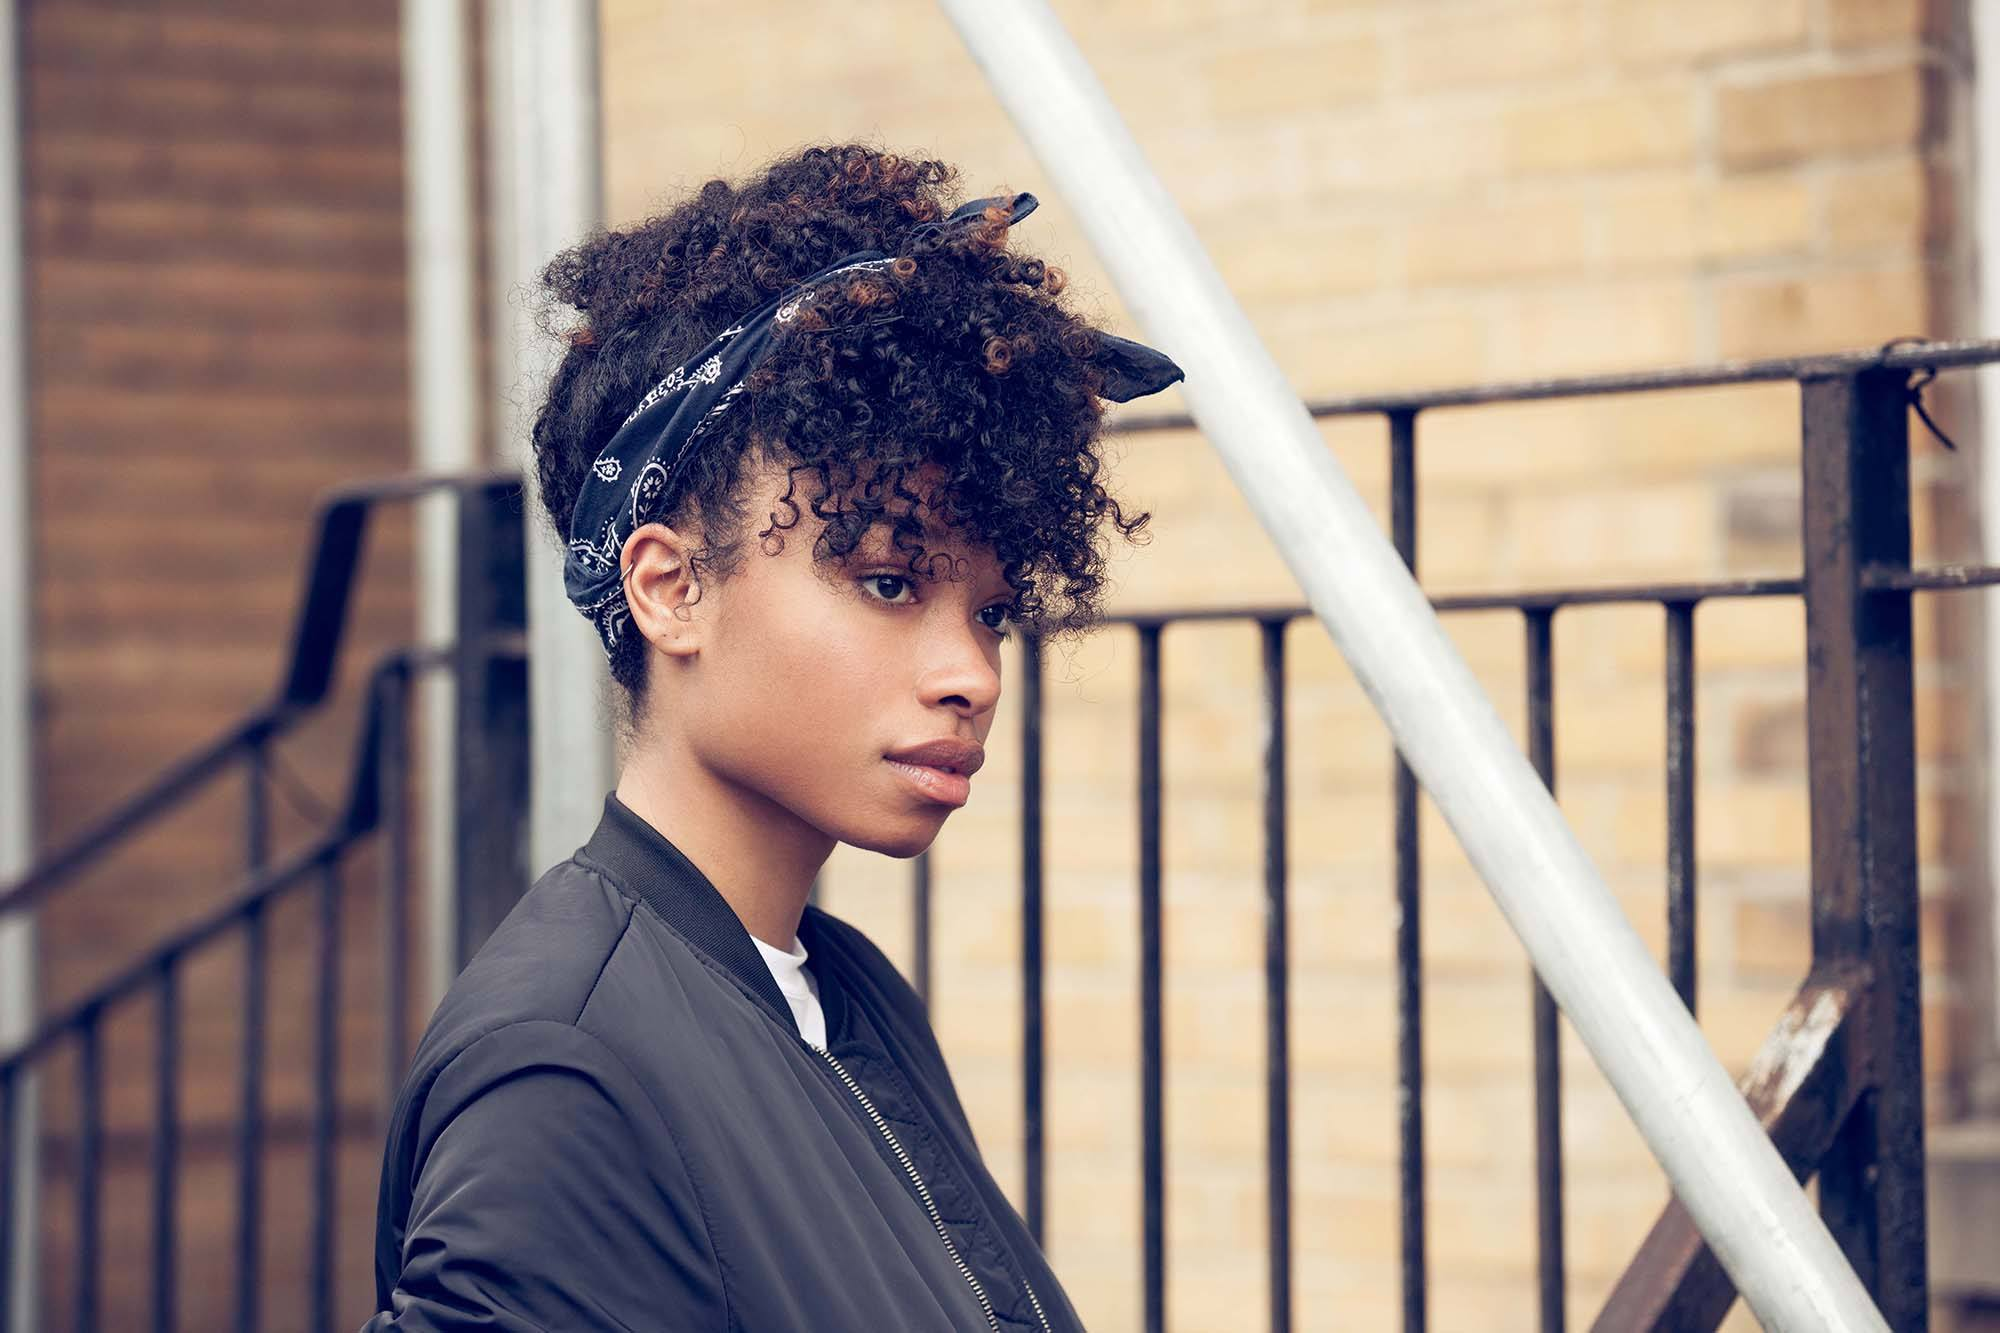 Gym hairstyles for short hair: Woman with curly natural hair in an updo tied with a hair scarf, wearing a bomber jacket and standing outside